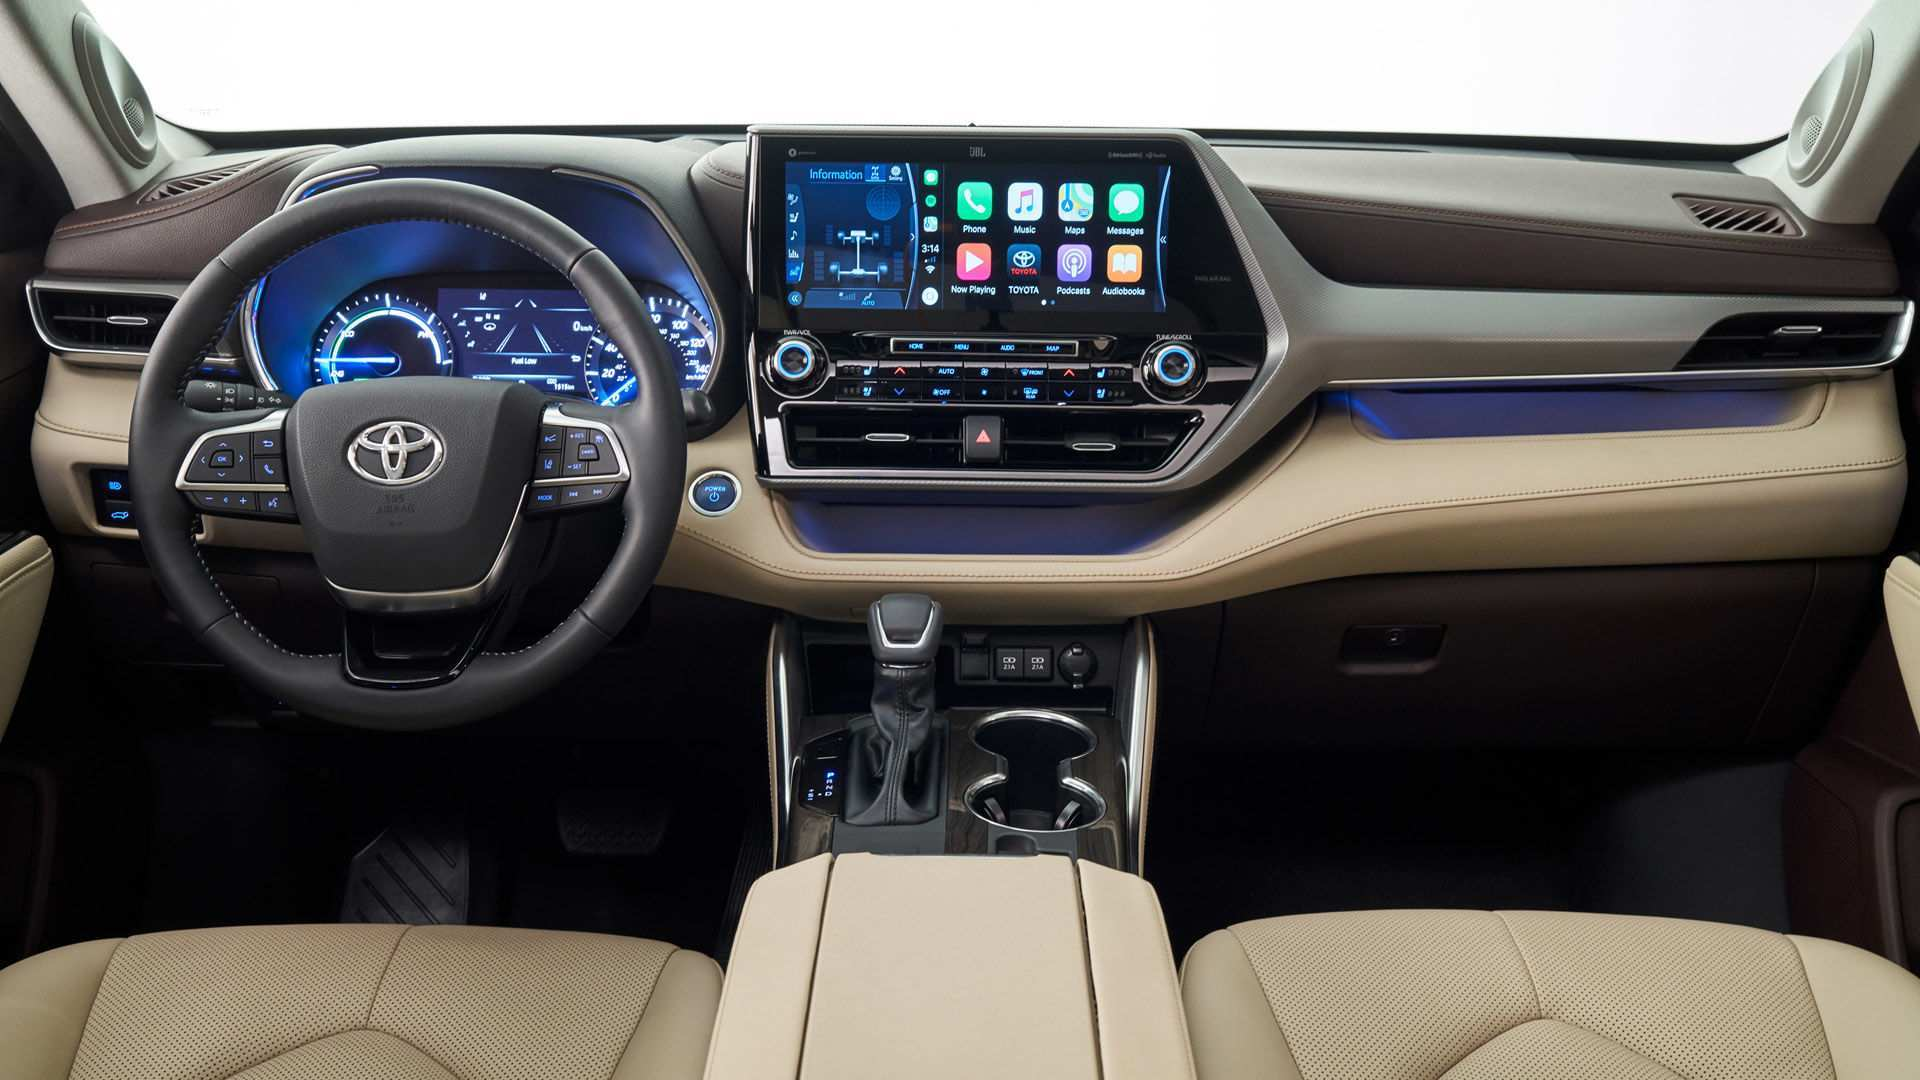 64 All New Toyota Highlander 2020 Interior Photos